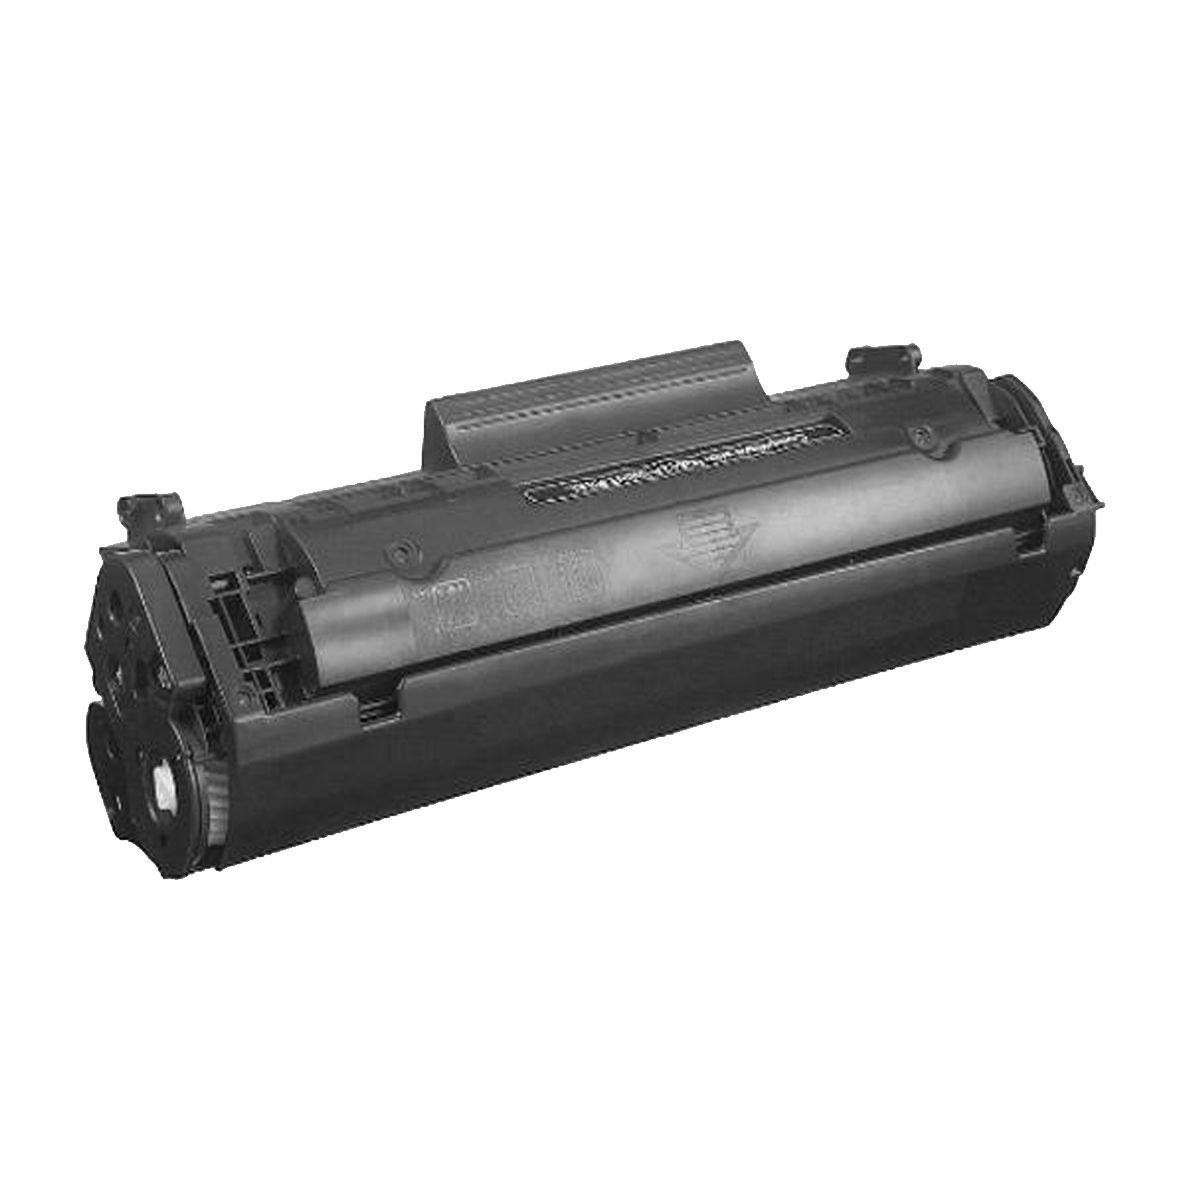 Toner Compativel com HP Q2612A Q2612 2612 12A - 1018 1020 M1005